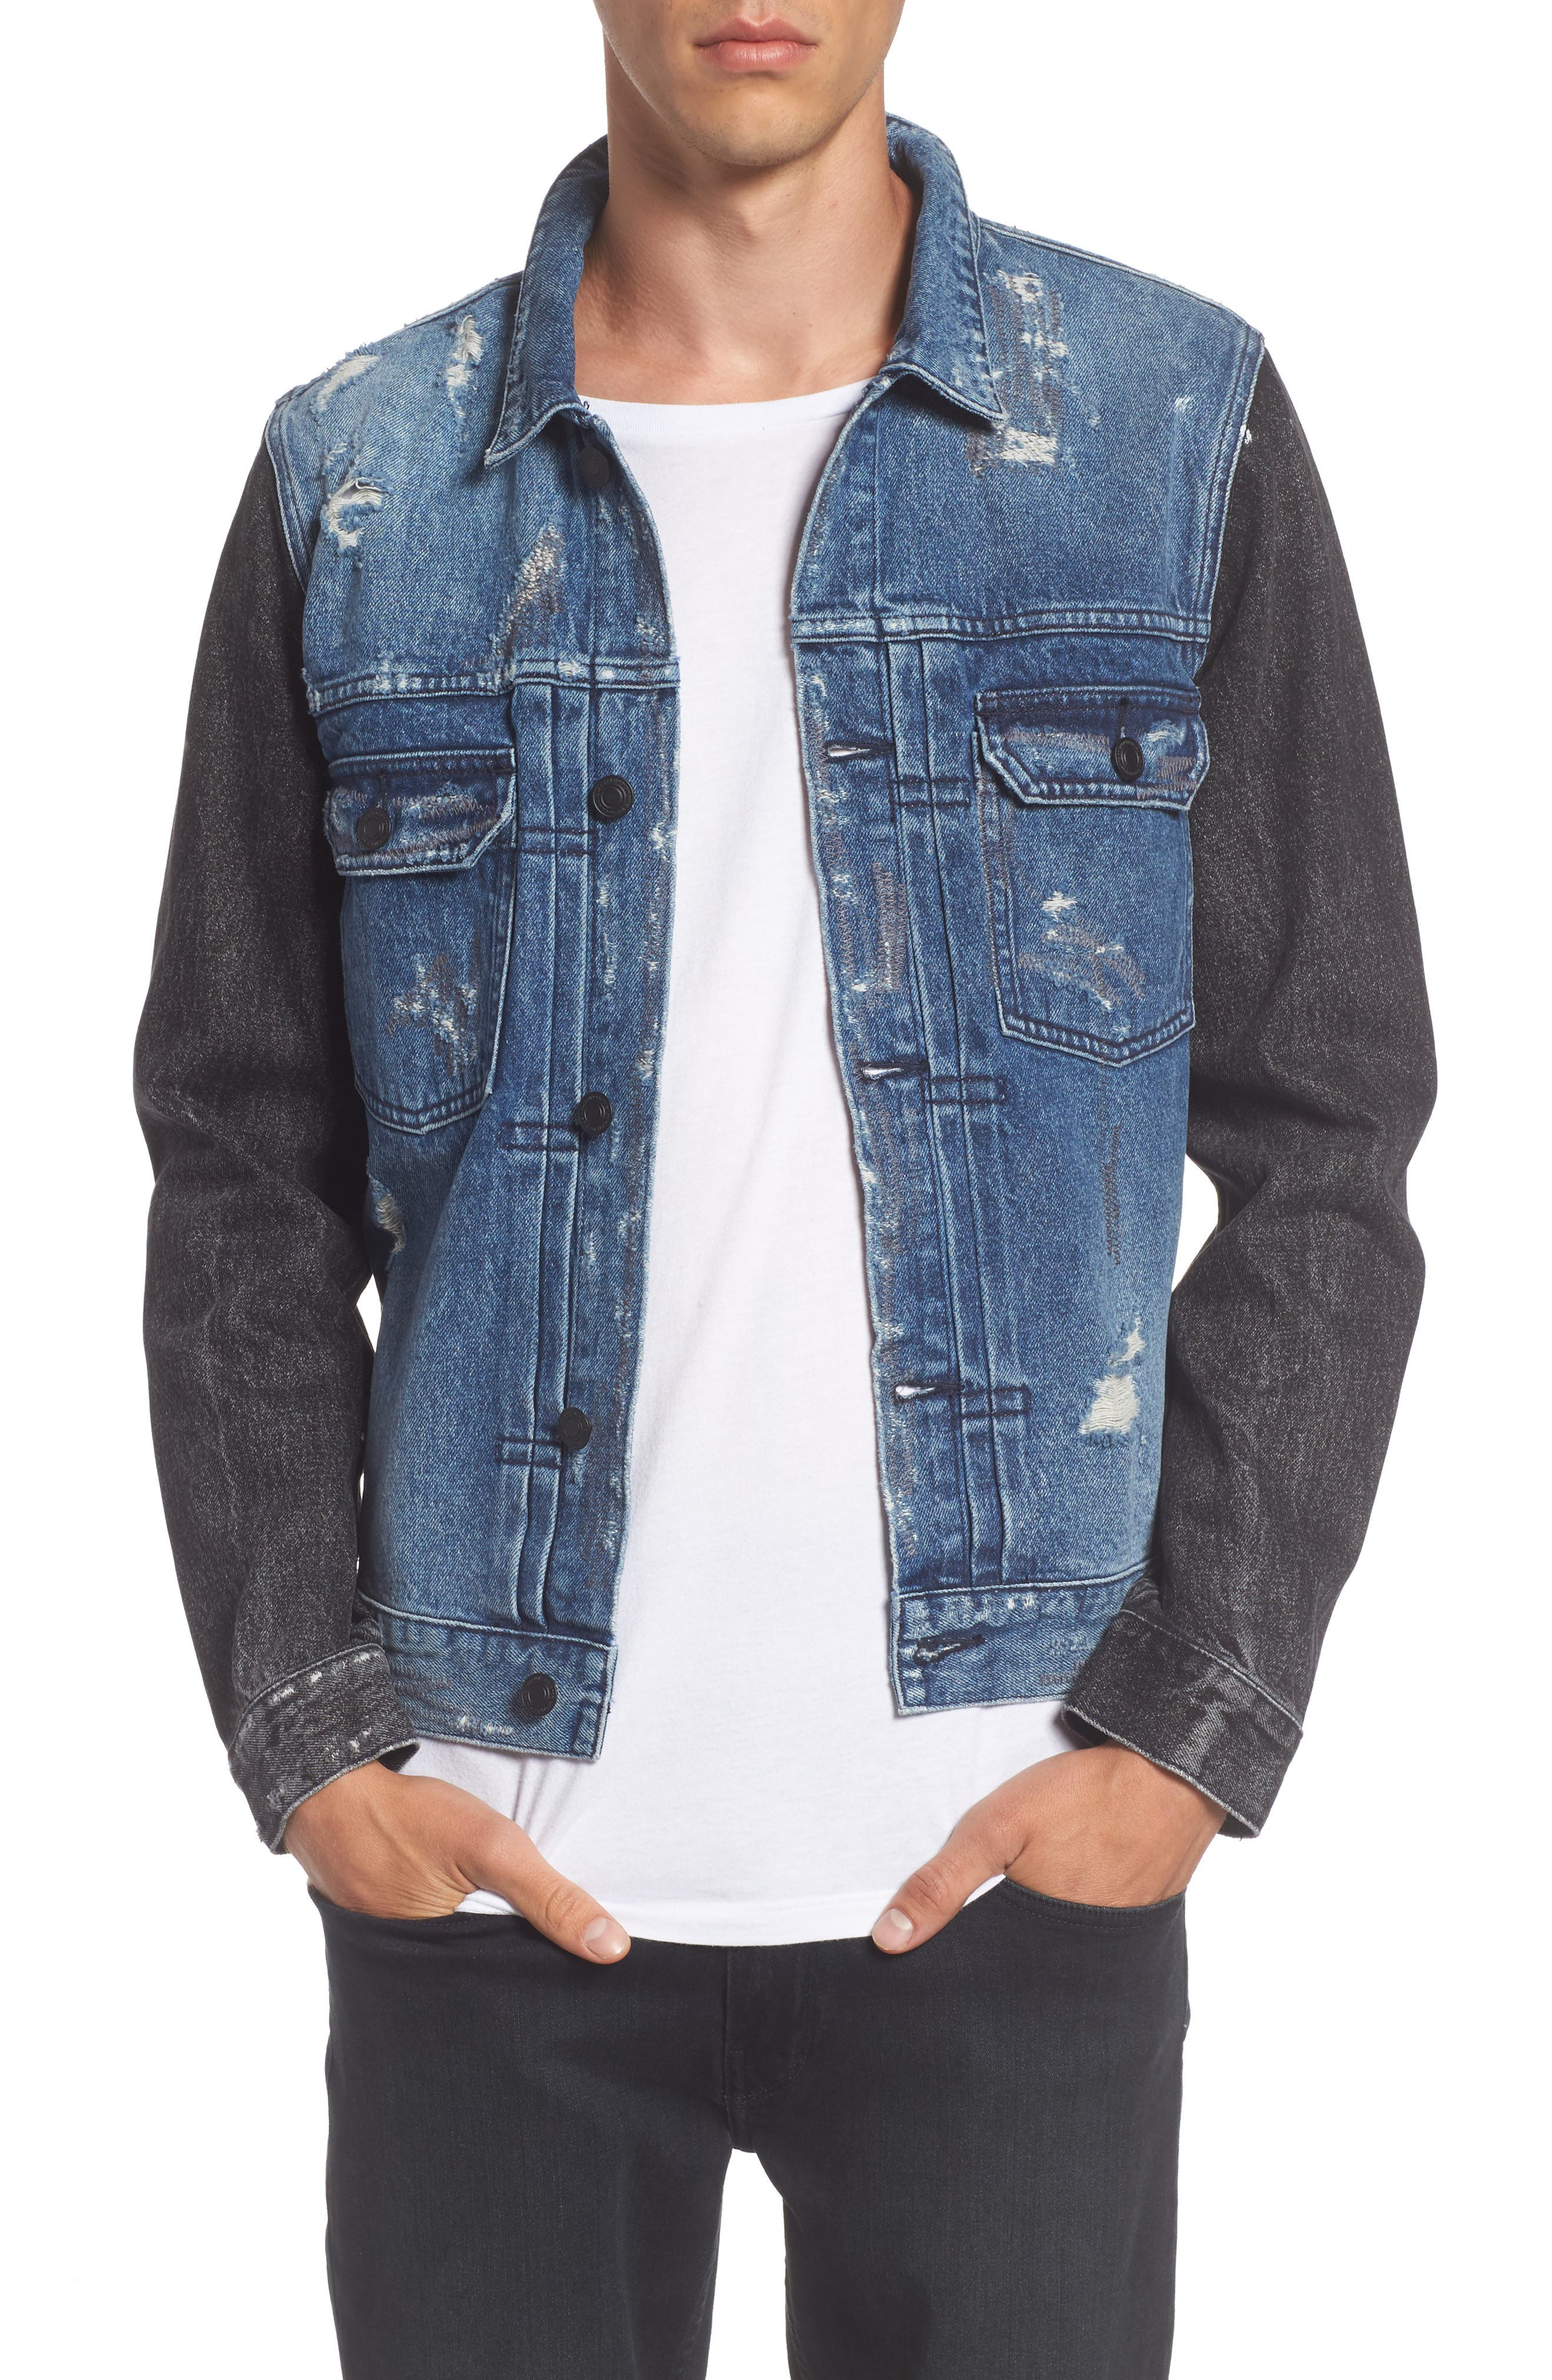 Trash Denim Jacket,                             Main thumbnail 1, color,                             460